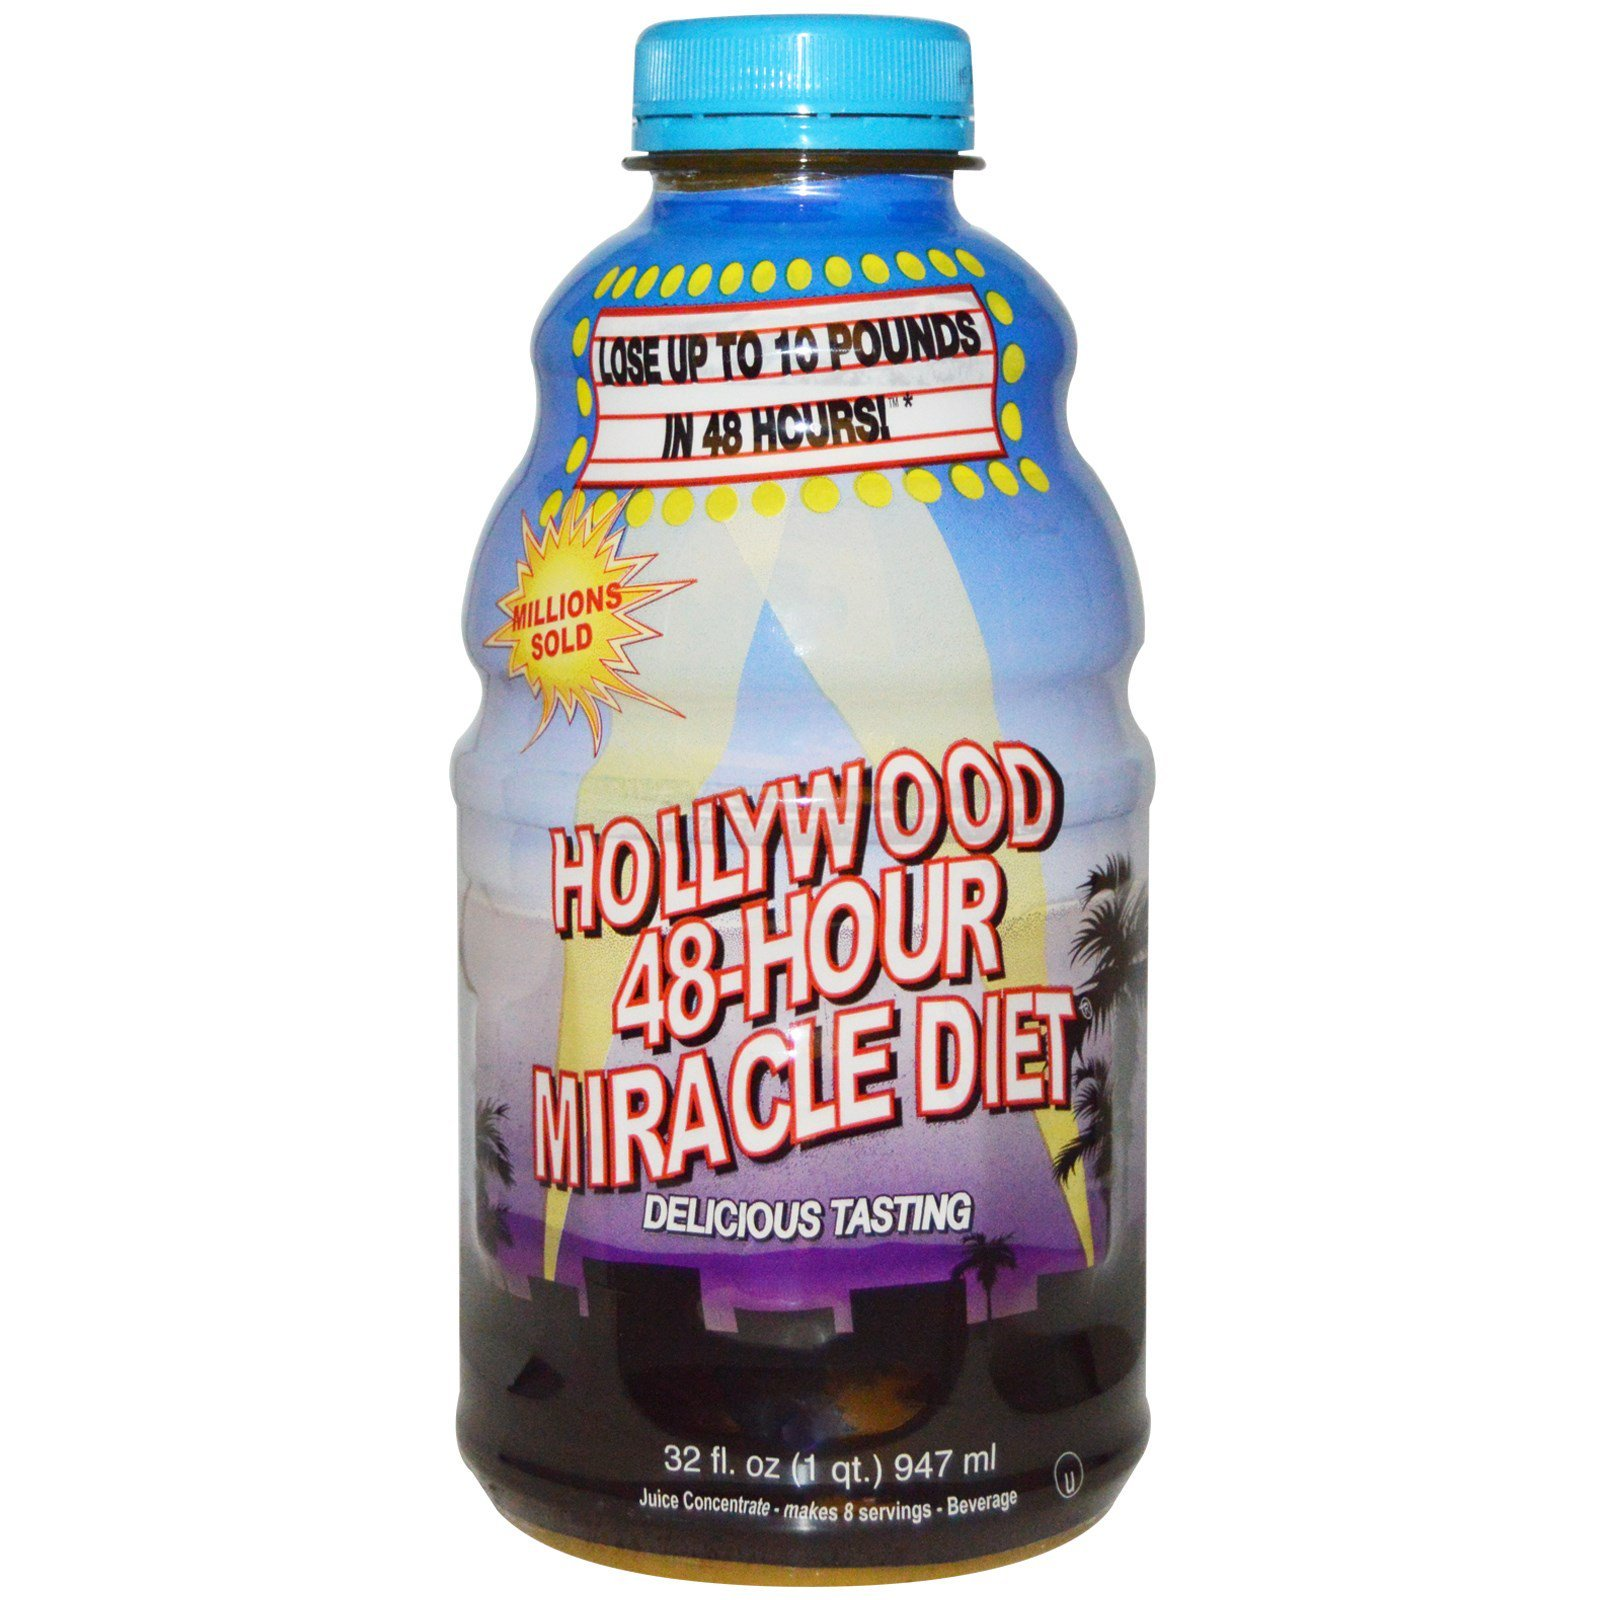 Hollywood 48 Hour Miracle Diet Review